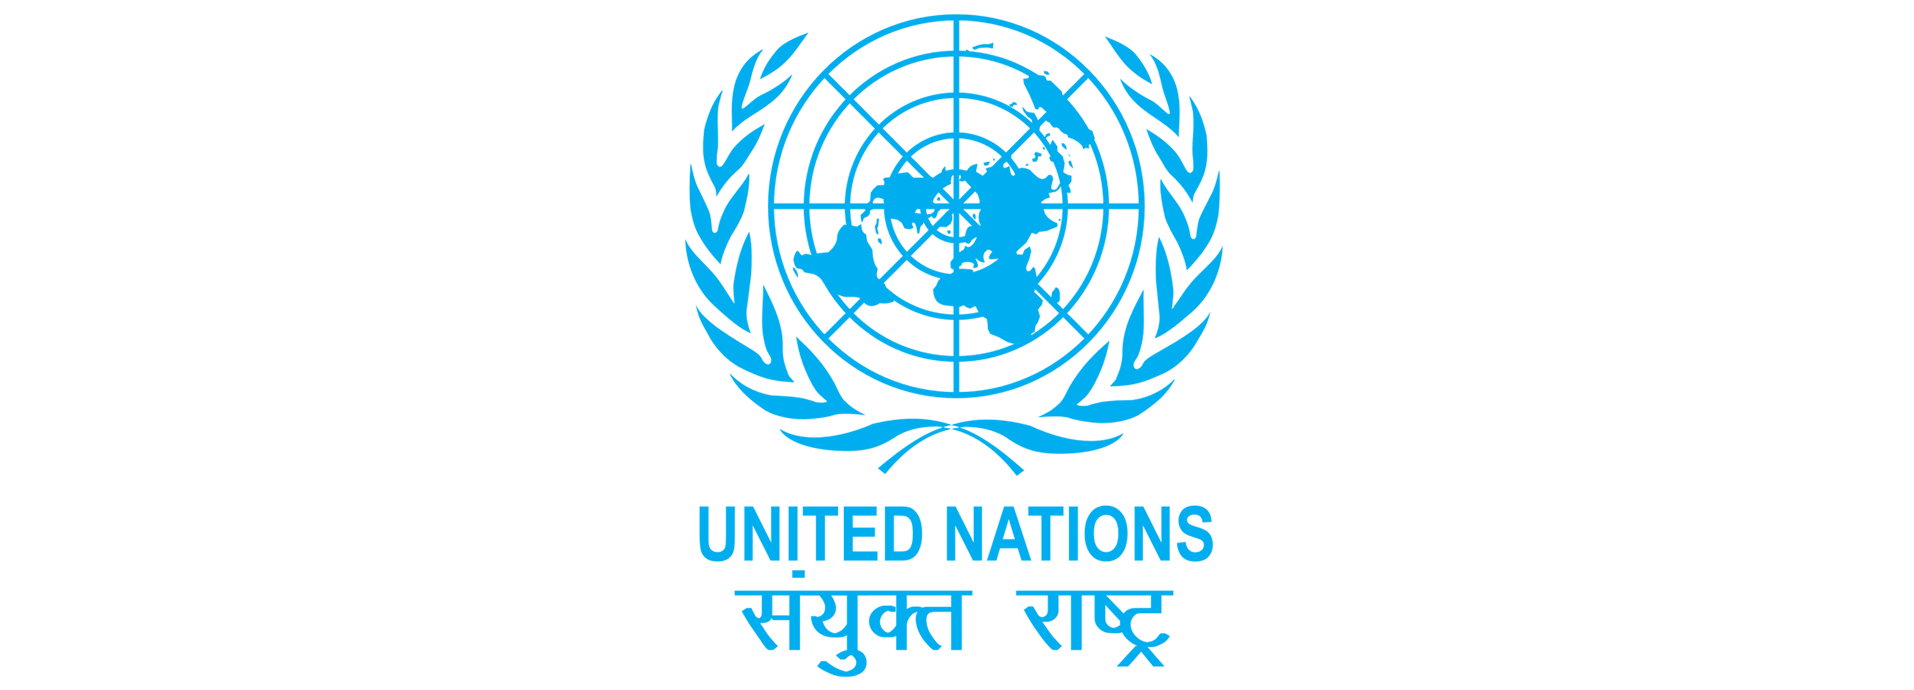 UN Day 2019: Gandhi and Sustainability